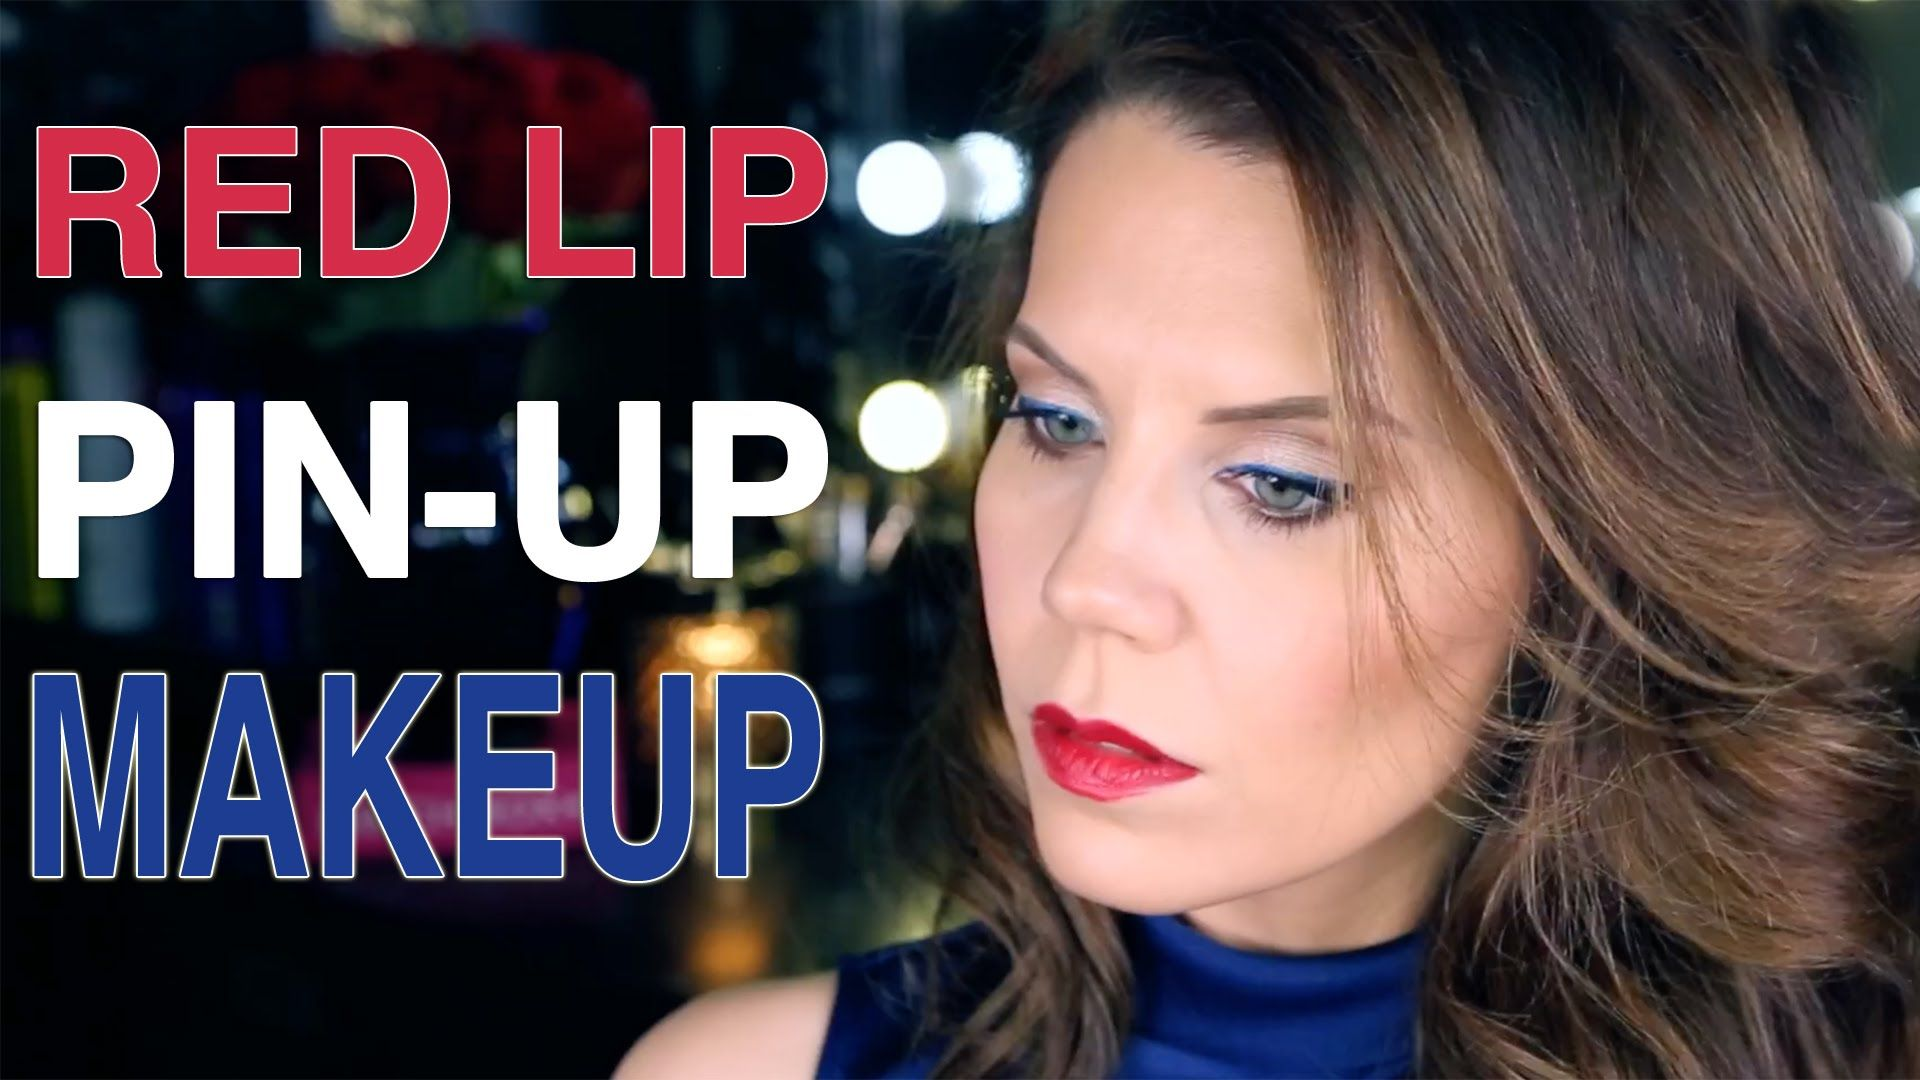 4th of july red lip makeup tutorial beauty makeup 4th of july red lip makeup tutorial baditri Image collections